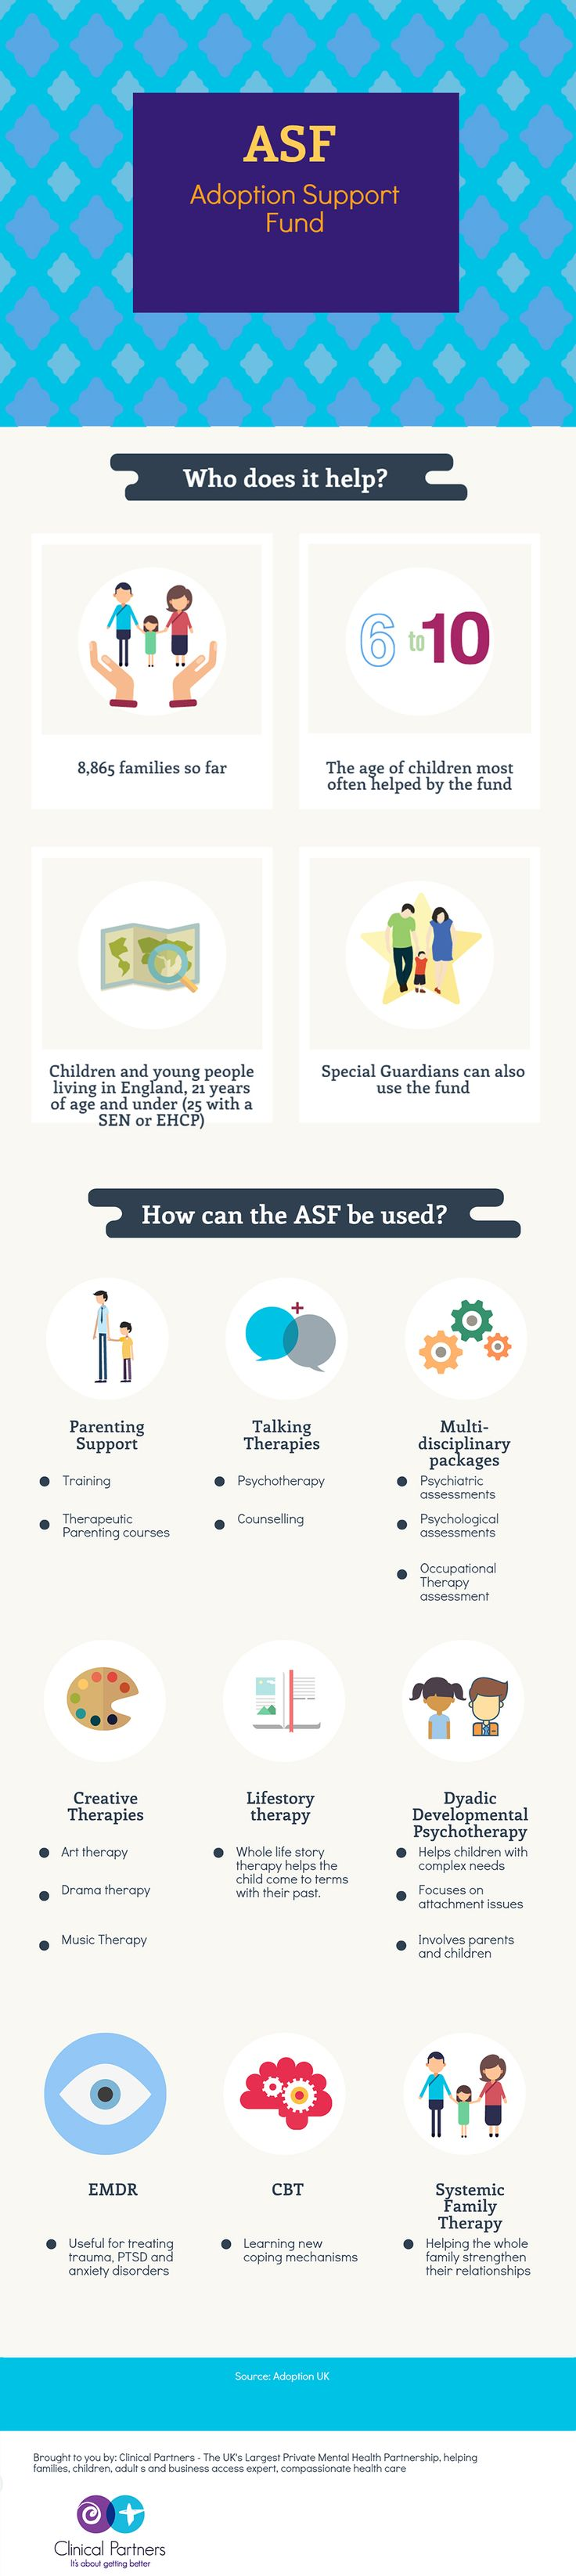 The Adoption Support Fund is a Government funded resource that is helping thousands of adopted children and their families living in England. Find out more here - https://www.clinical-partners.co.uk/child-adolescents/adoption-support-fund #adoptionsupport